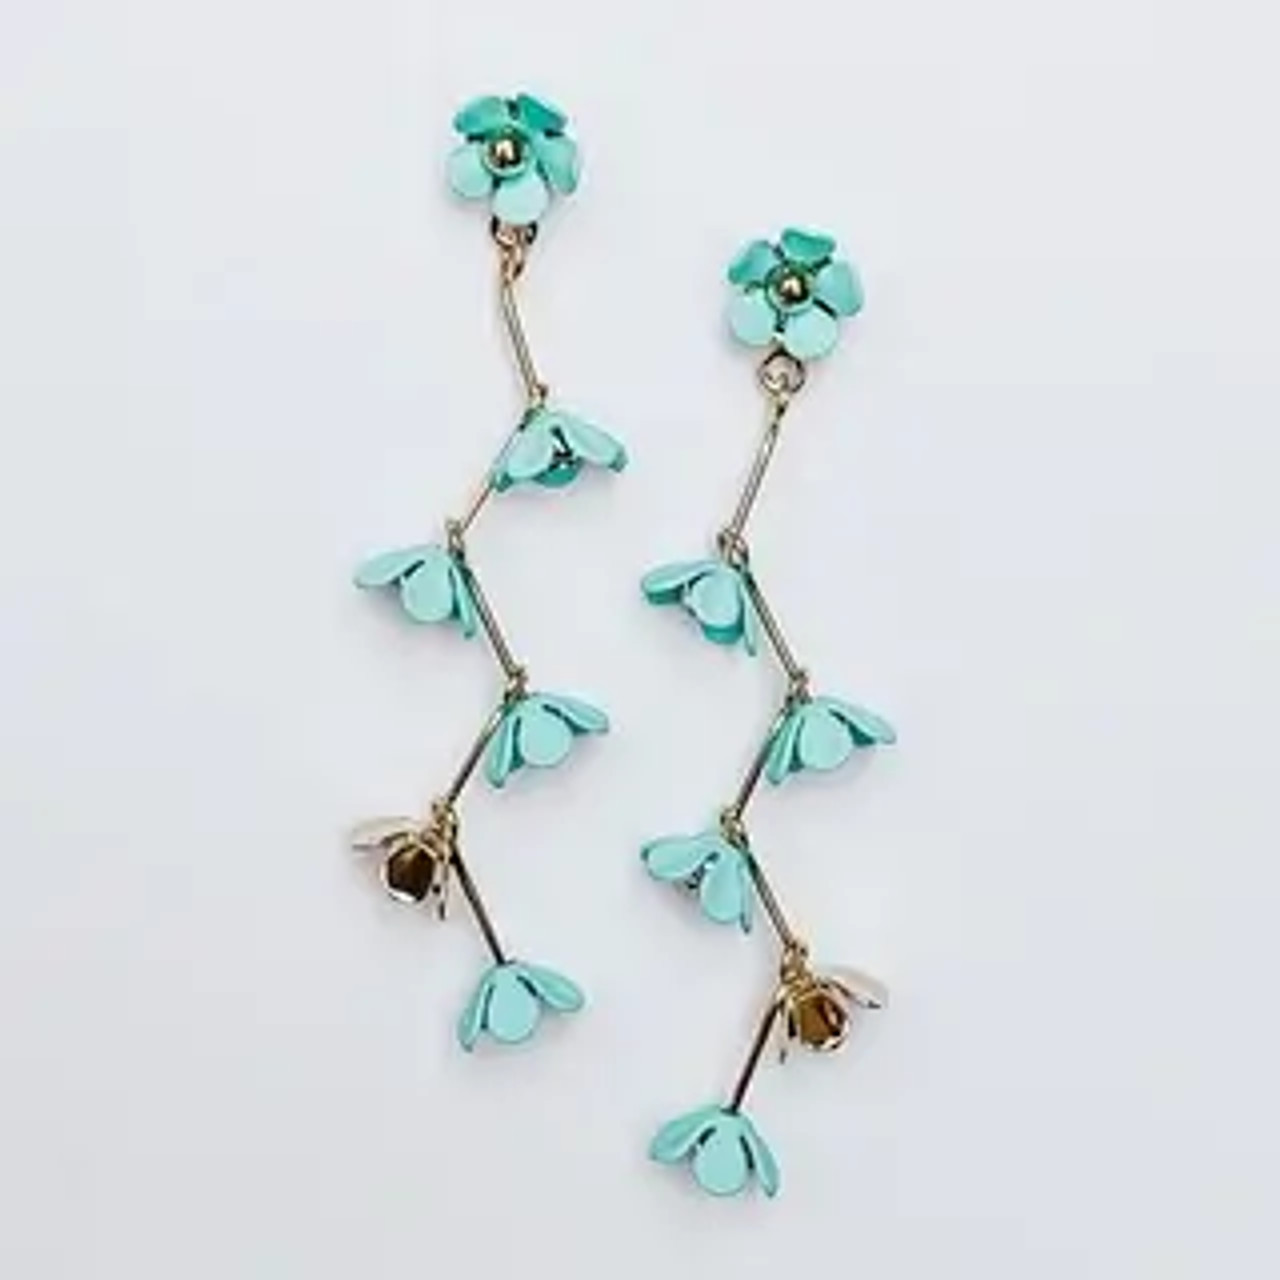 """Delicate turquoise and gold flowers dangling from gold tone links. 2 1/4"""" drop from post backs"""